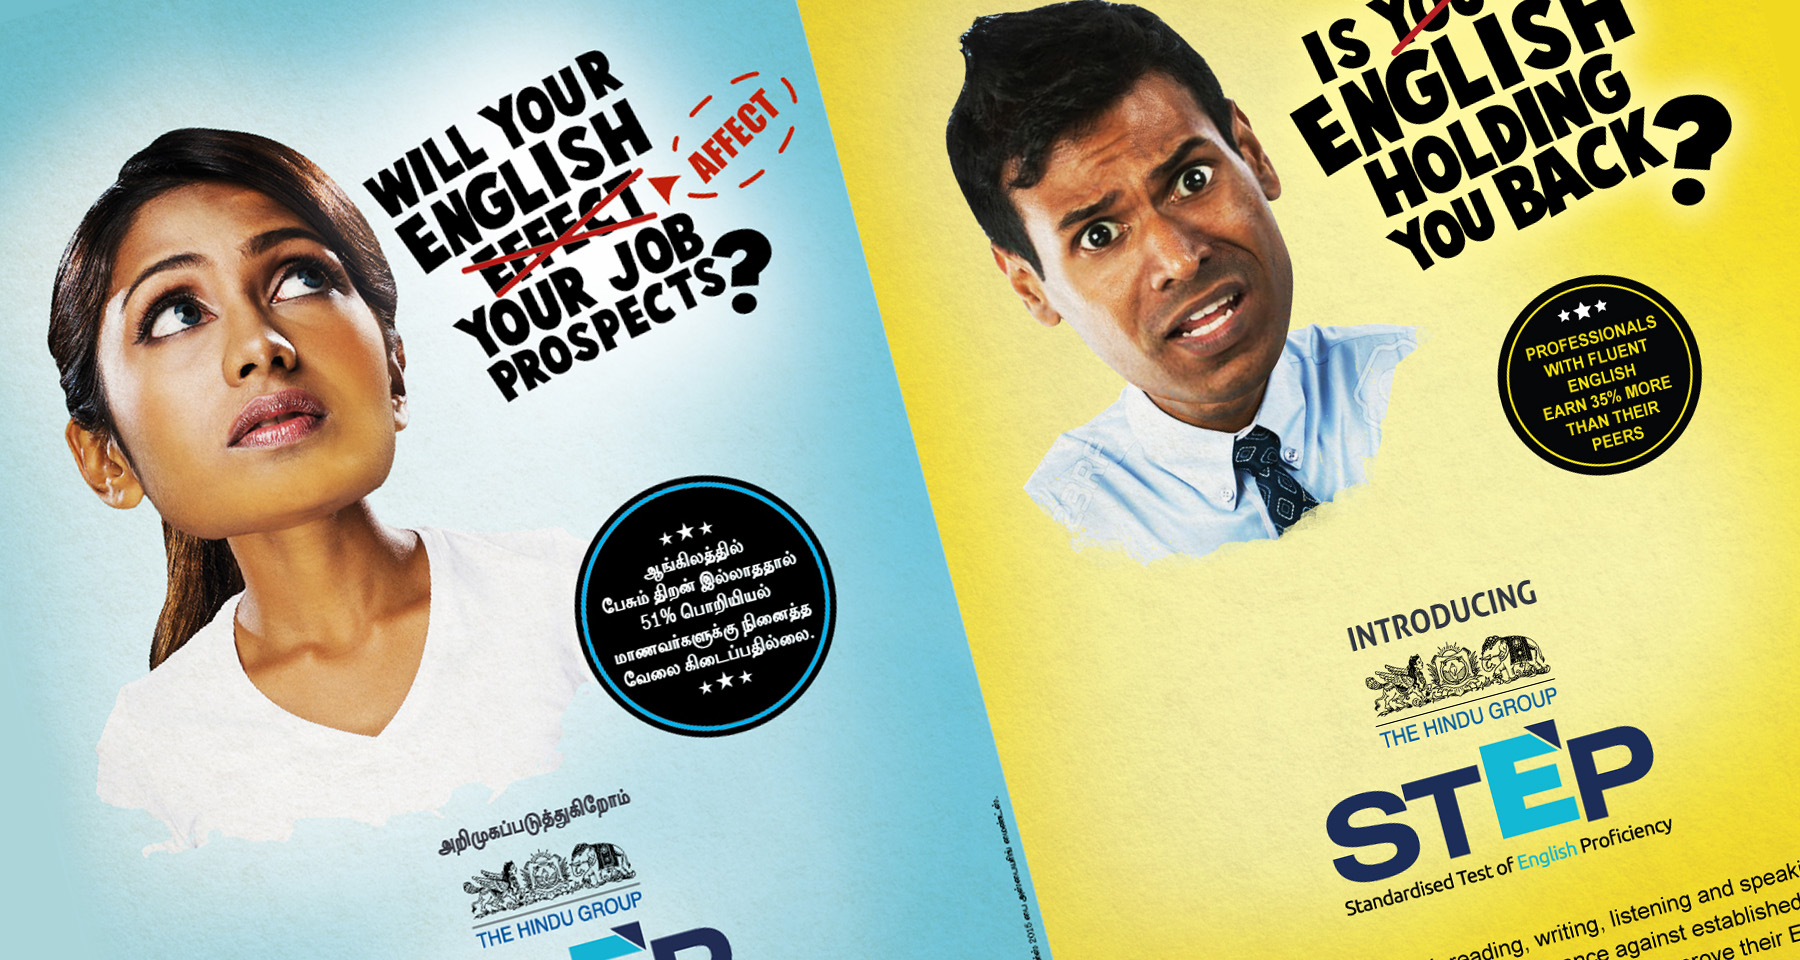 Hindu Group study pinpoints strengths of print advertising